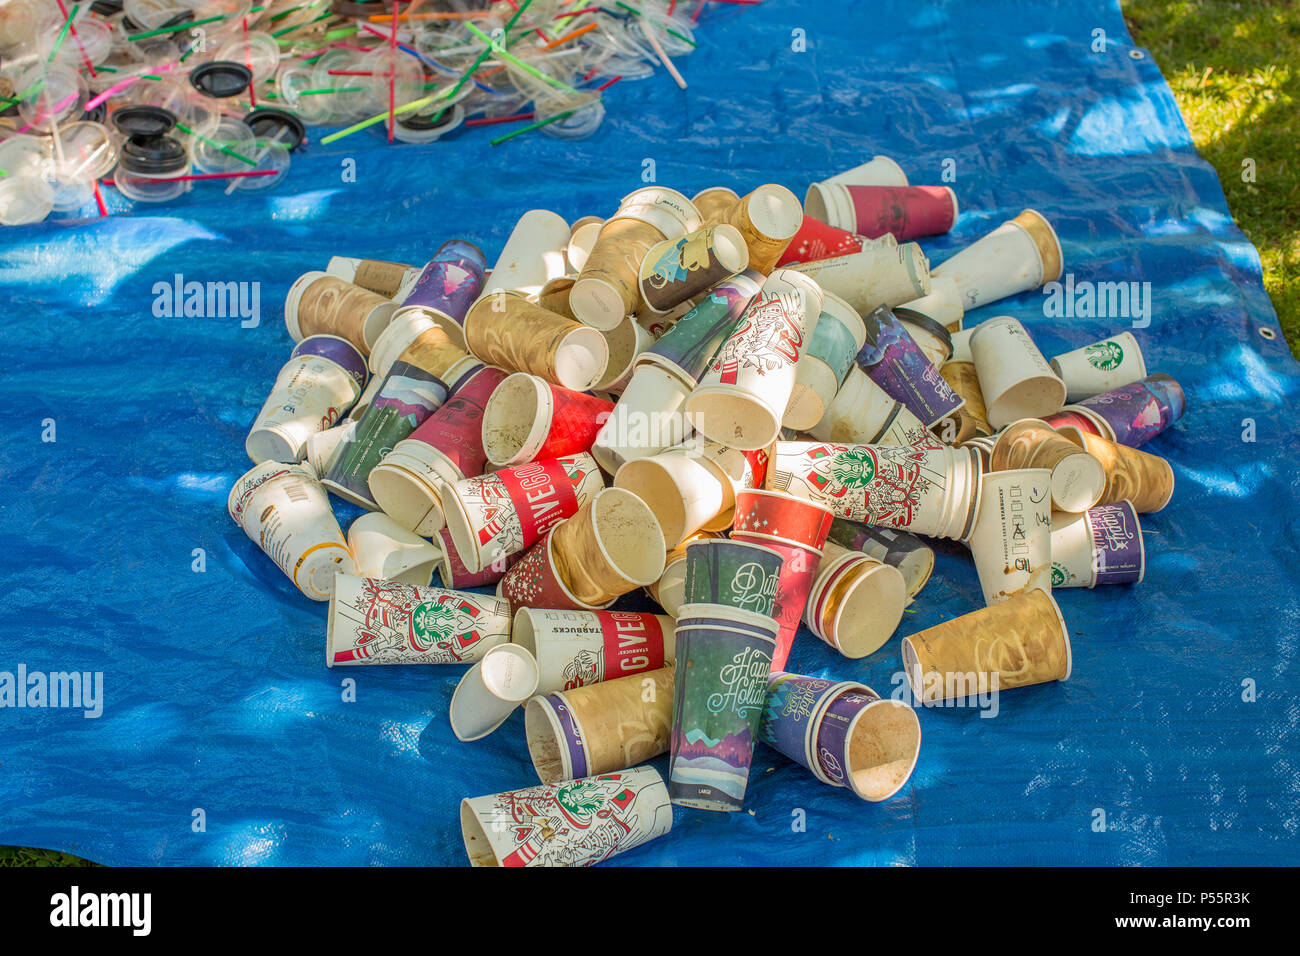 Piles of non-recyclable cups and straws destined for the landfill. - Stock Image